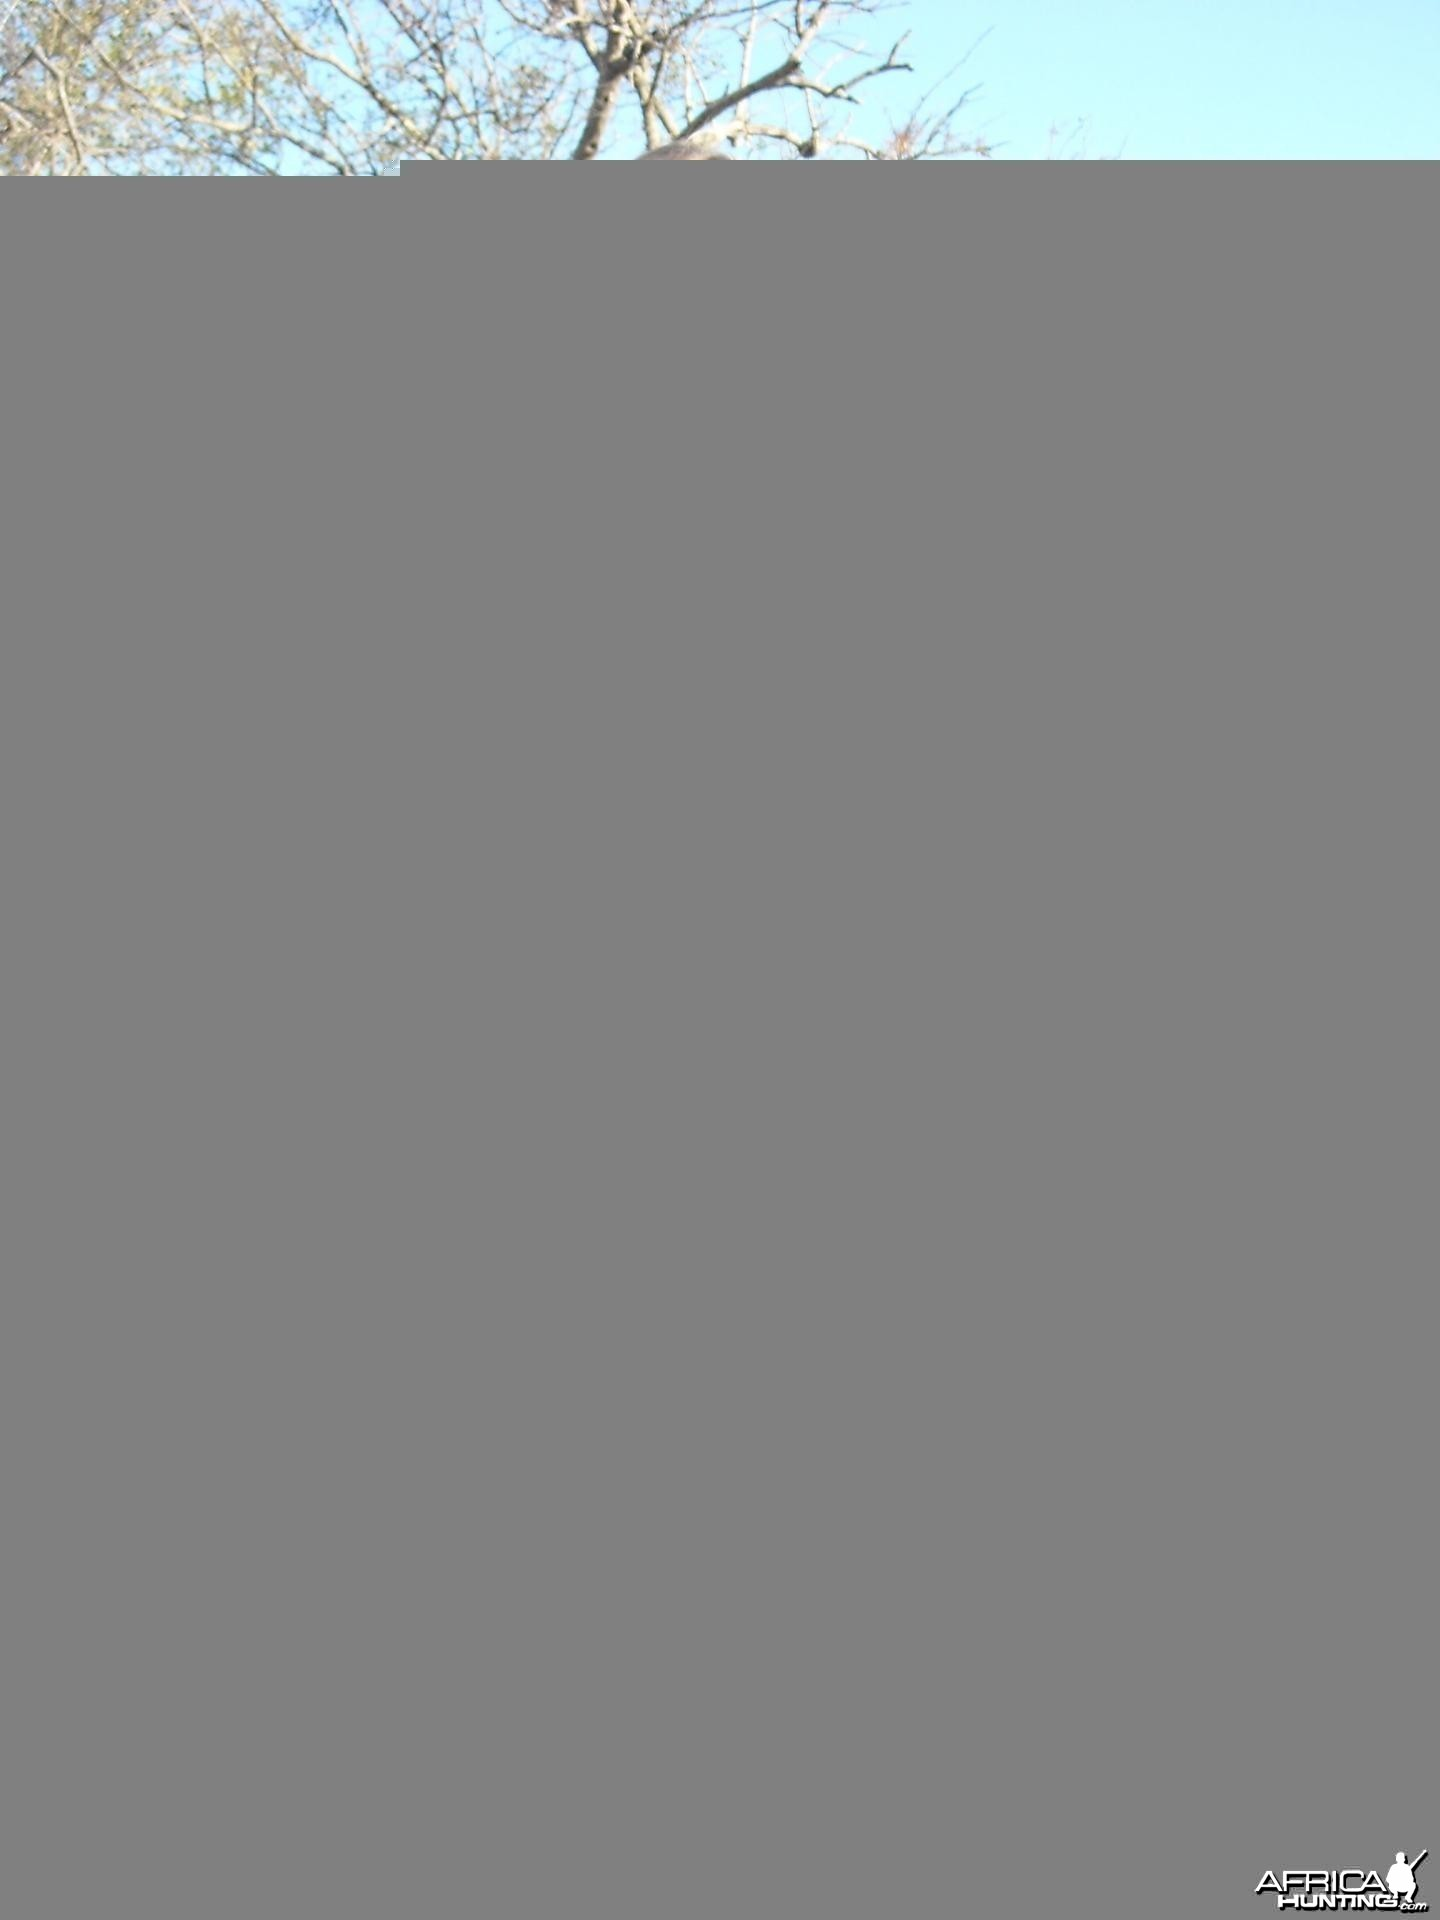 My wife with her Warthog